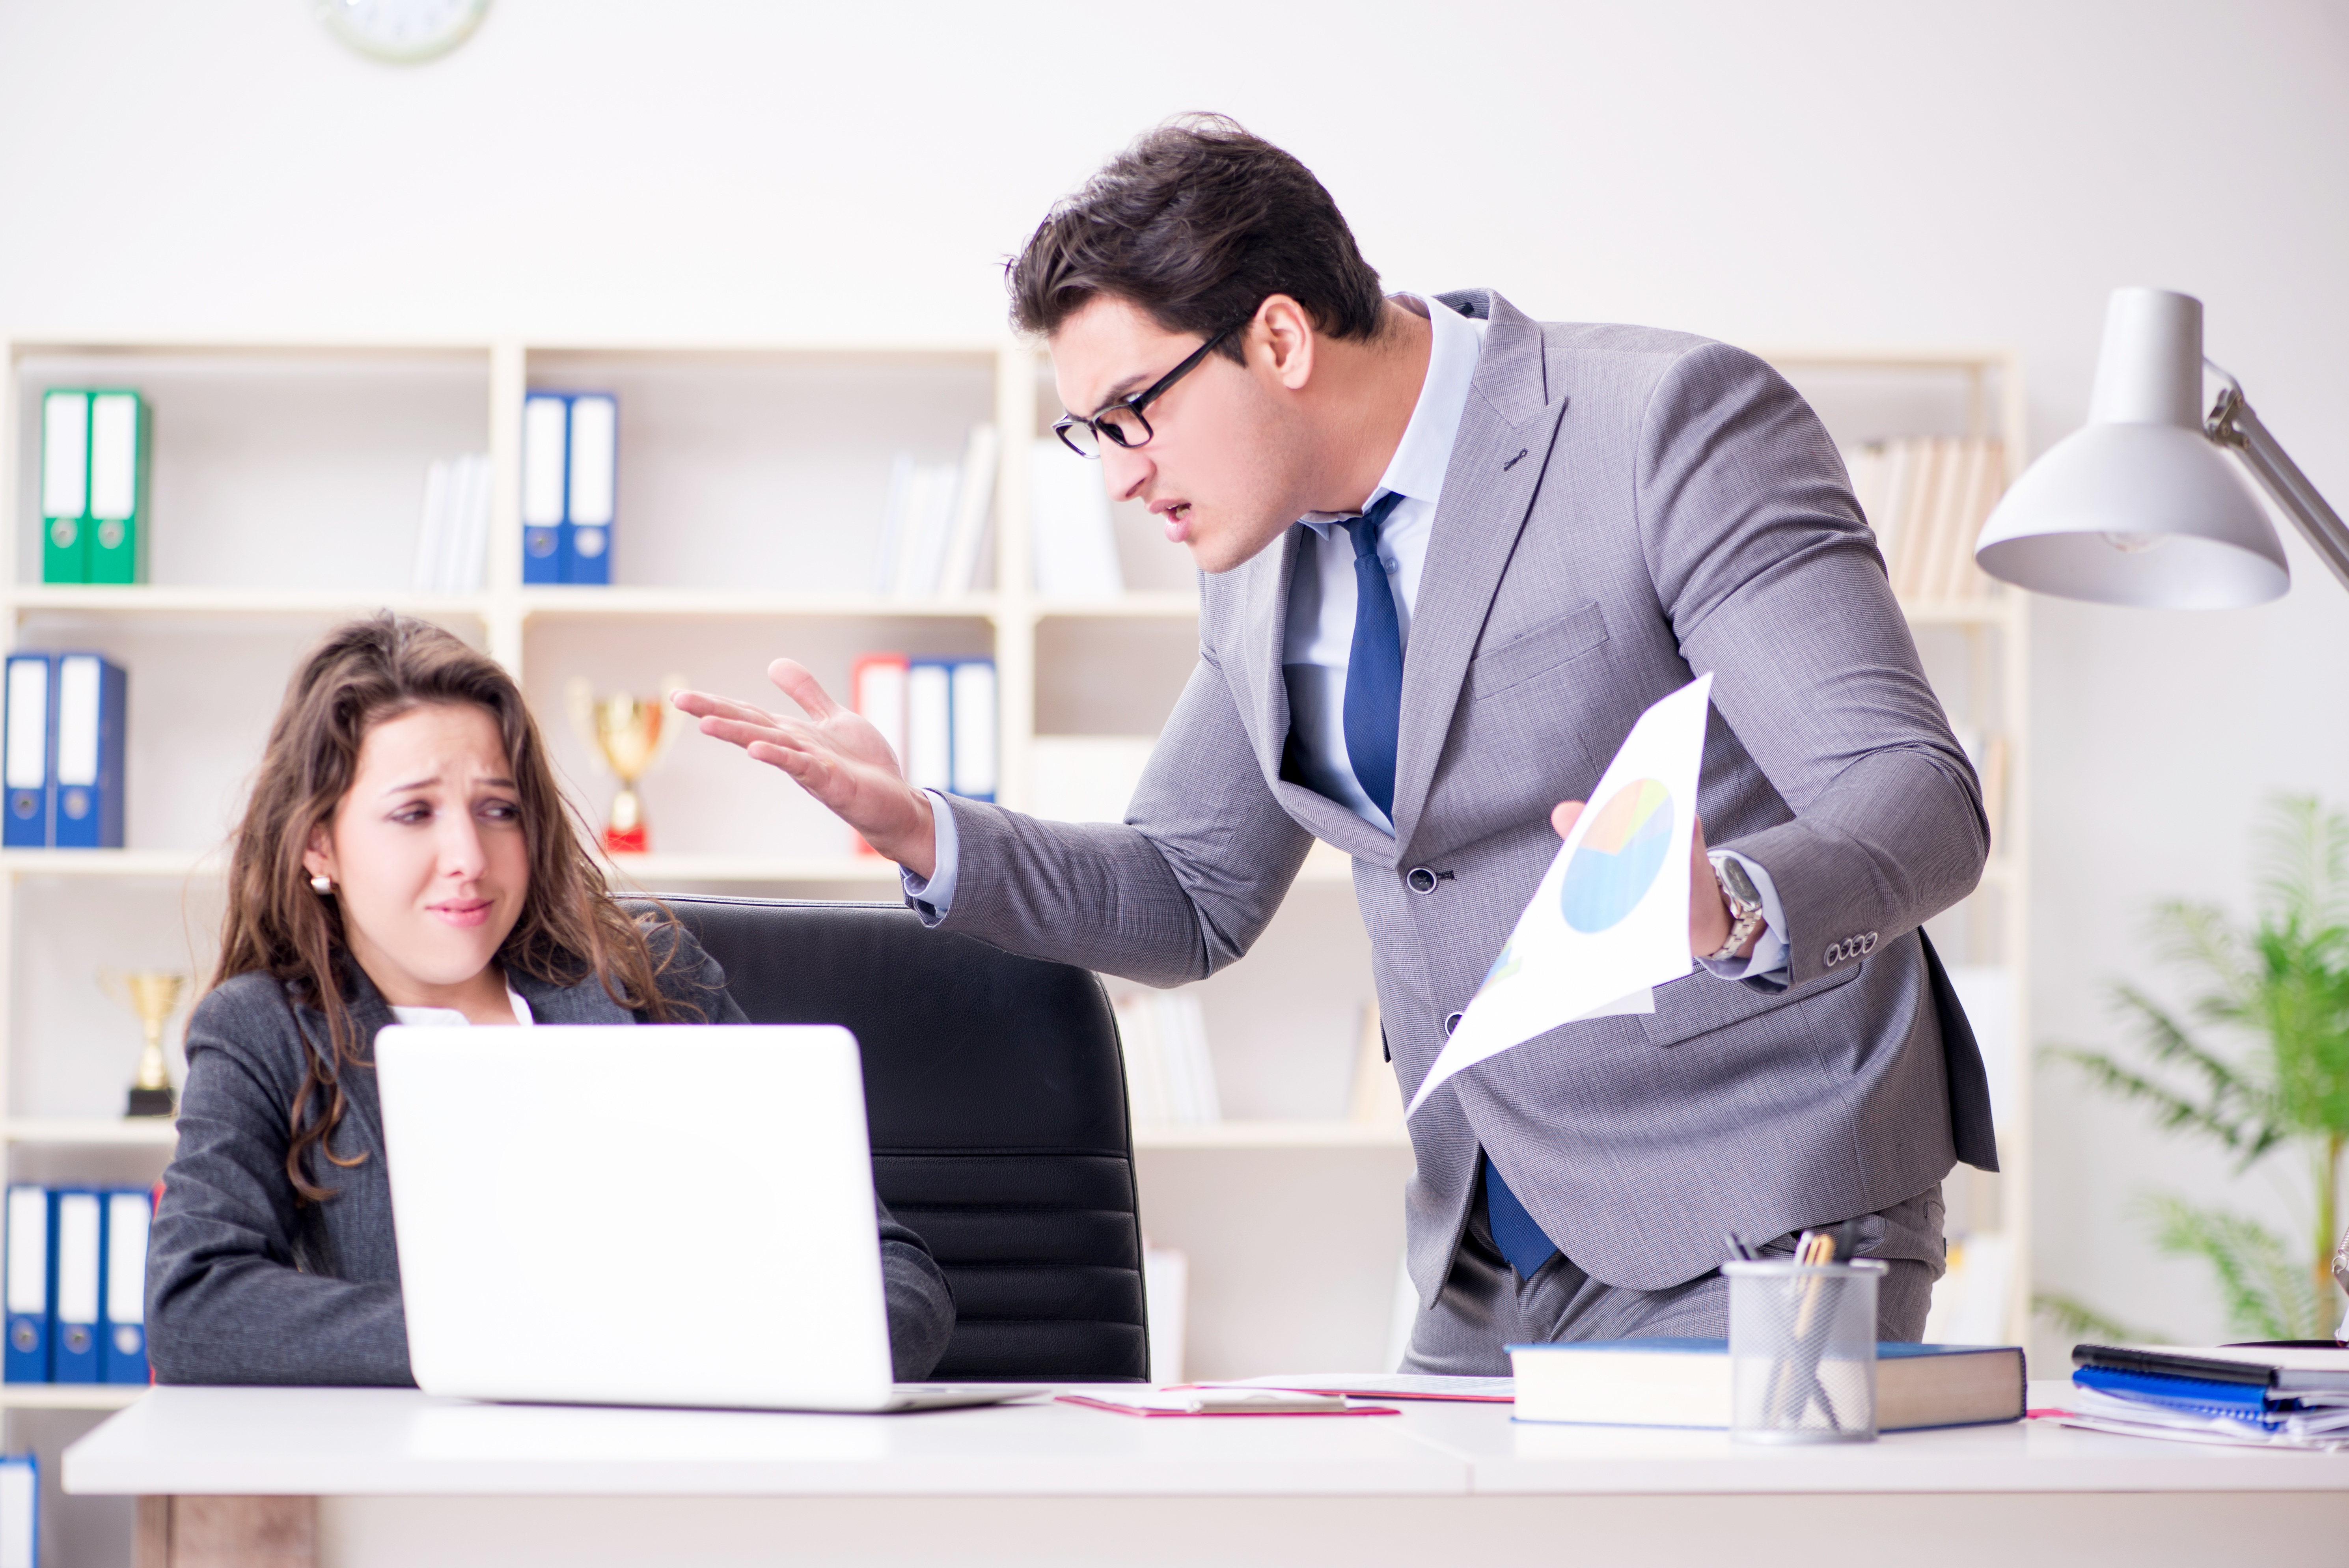 7 Tips to Avoid Micromanaging Your Sales Team